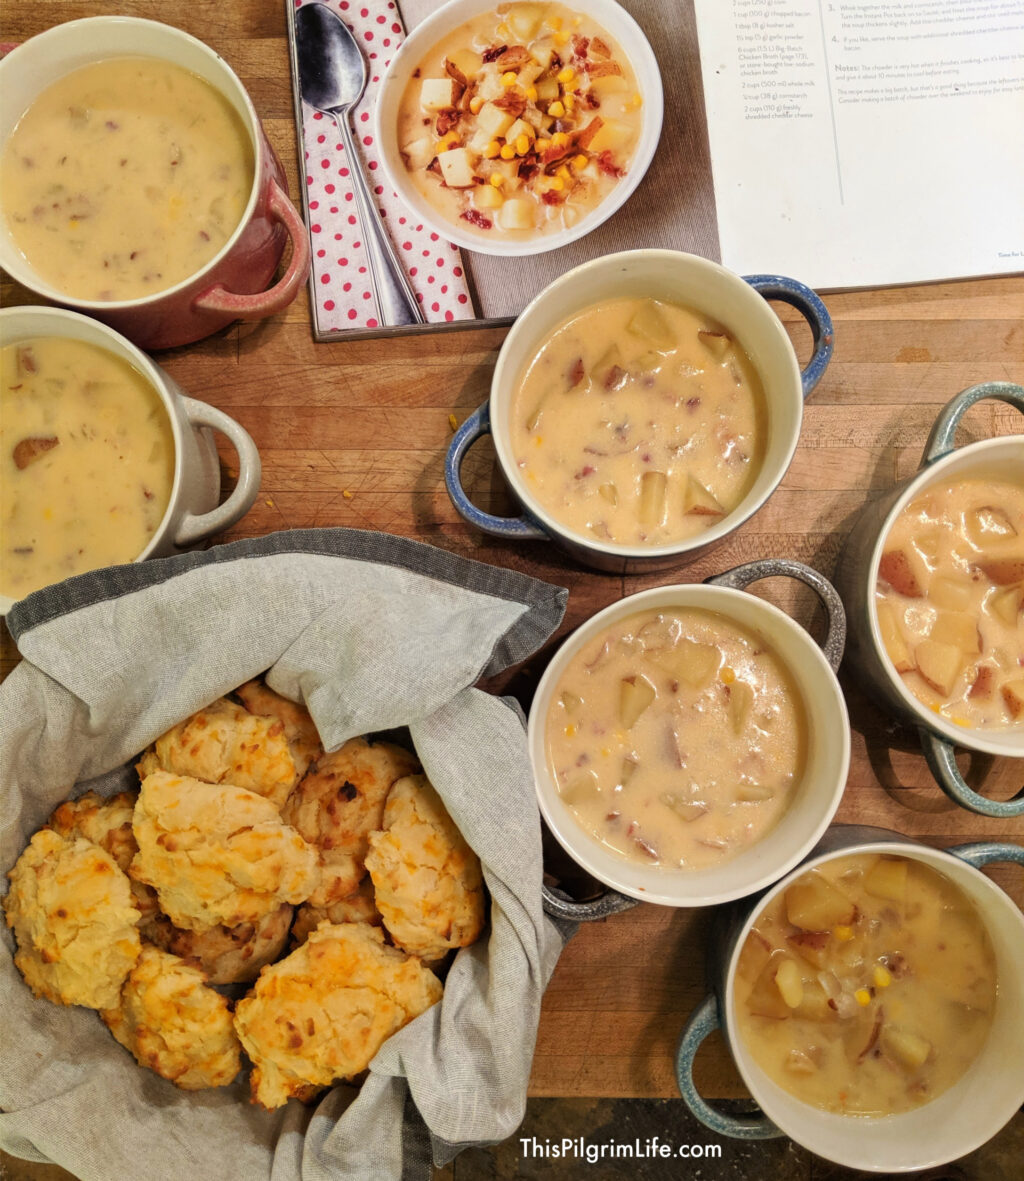 Cheddar garlic biscuits and bowls of loaded potato corn chowder